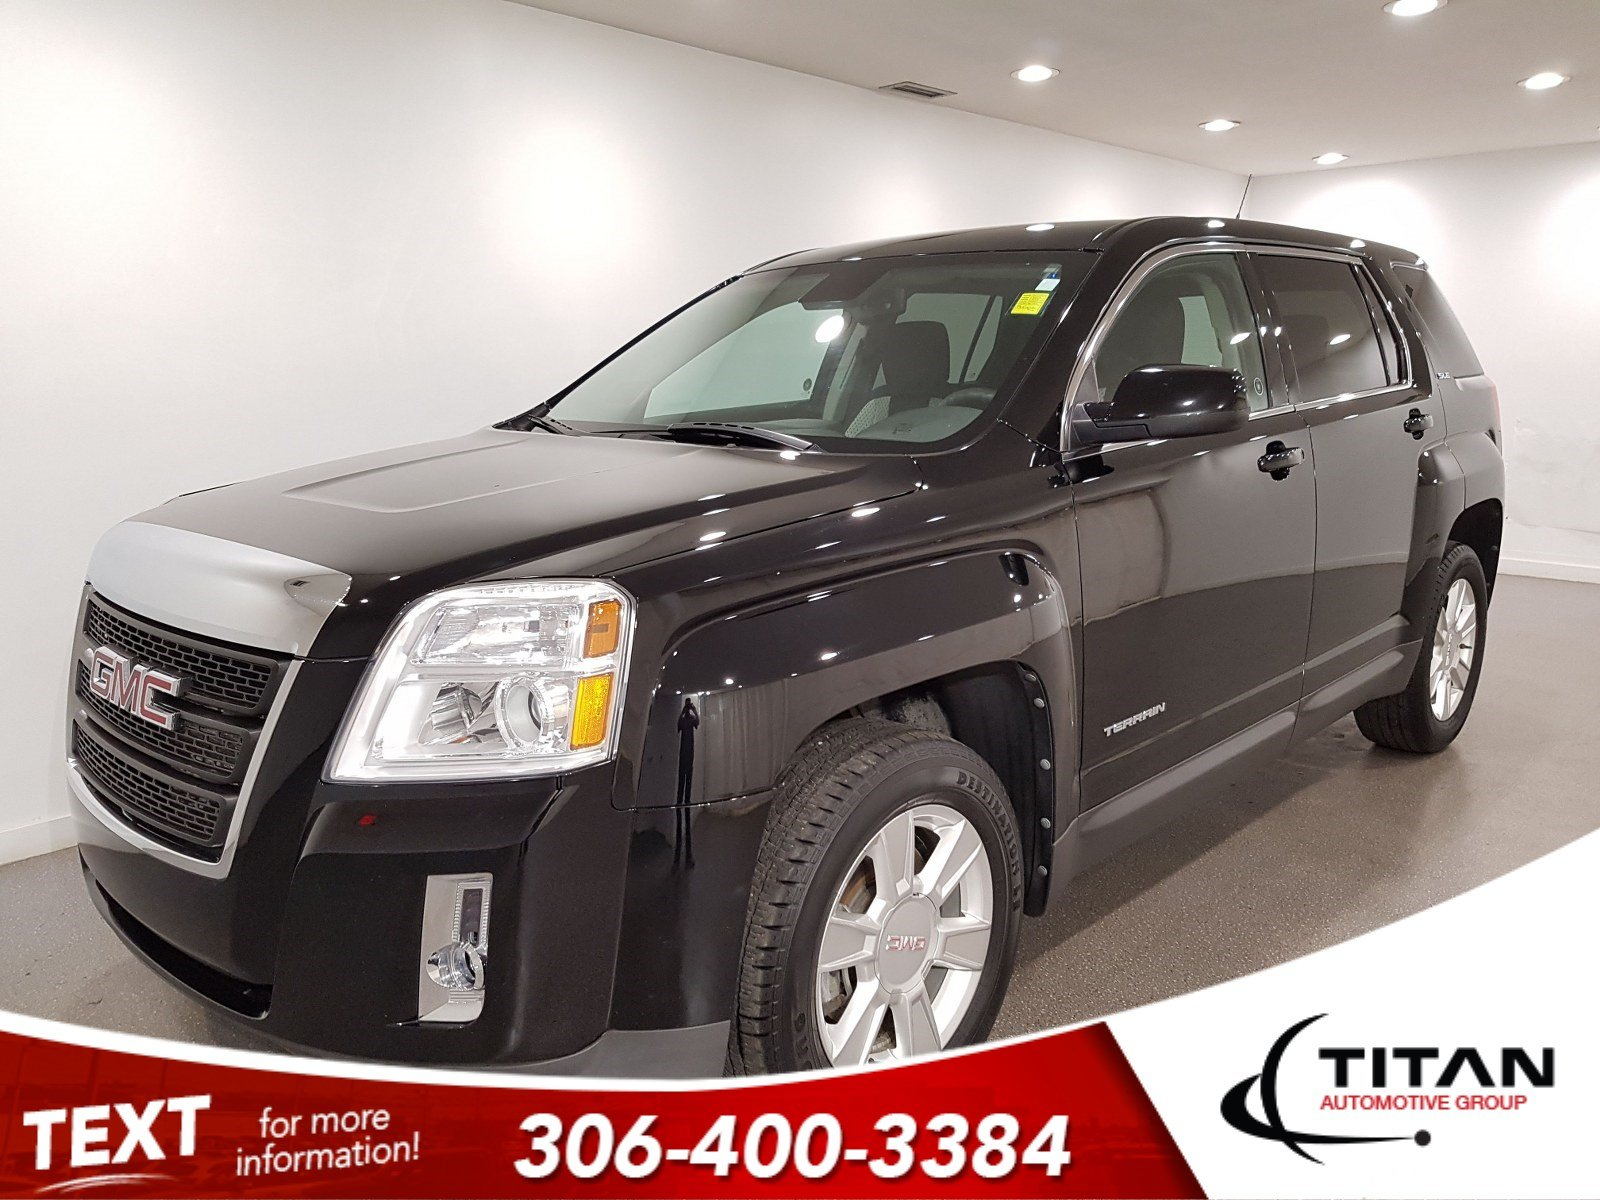 Pre-Owned 2012 GMC Terrain SLE AWD CAM Local Alloys 3 Month SXM New Tires & Brakes